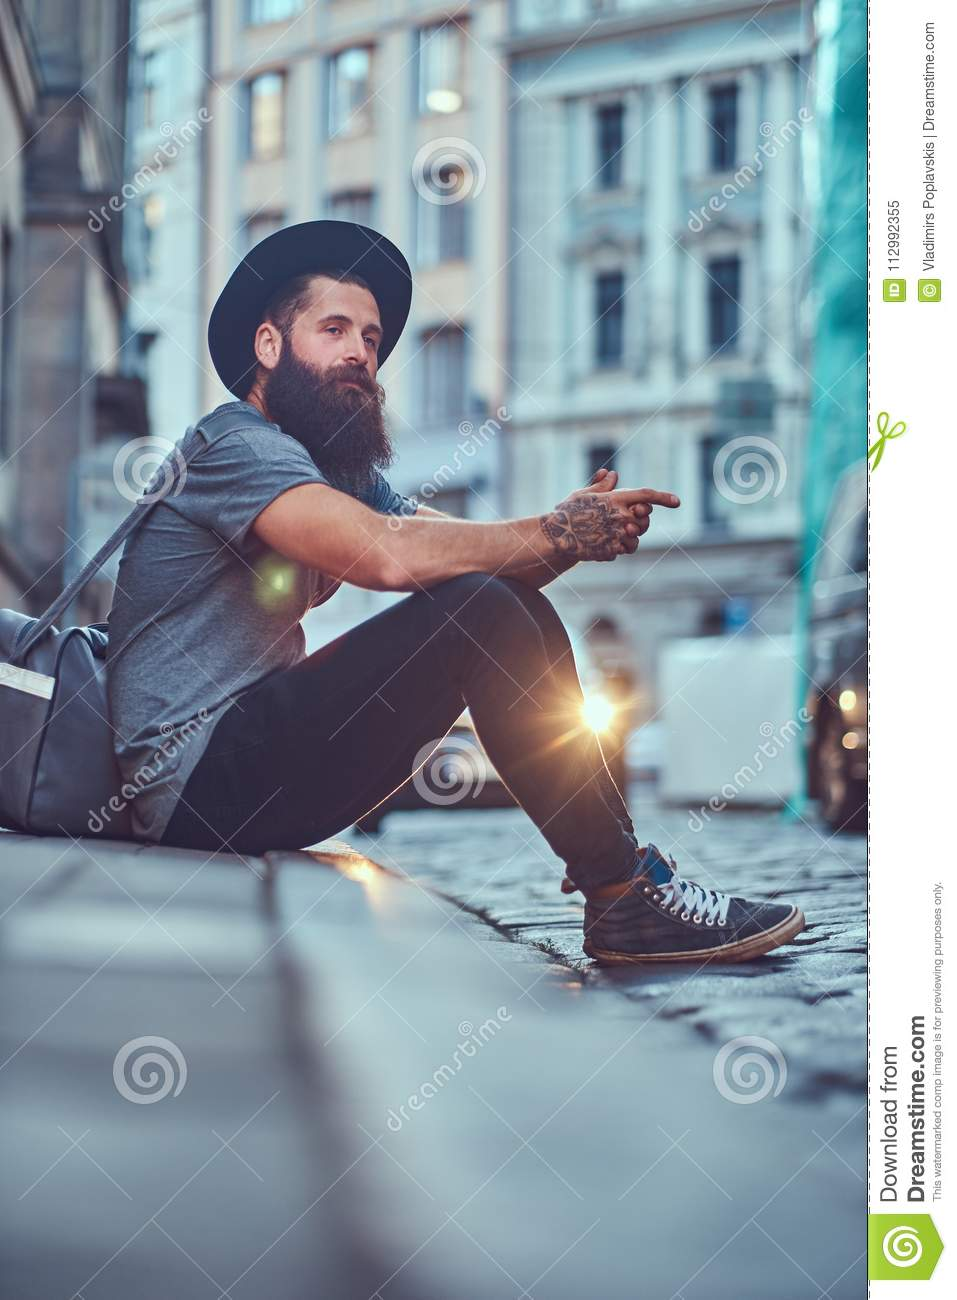 A handsome hipster traveler with a stylish beard and tattoo on his arms dressed in casual clothes with a bag, sits on